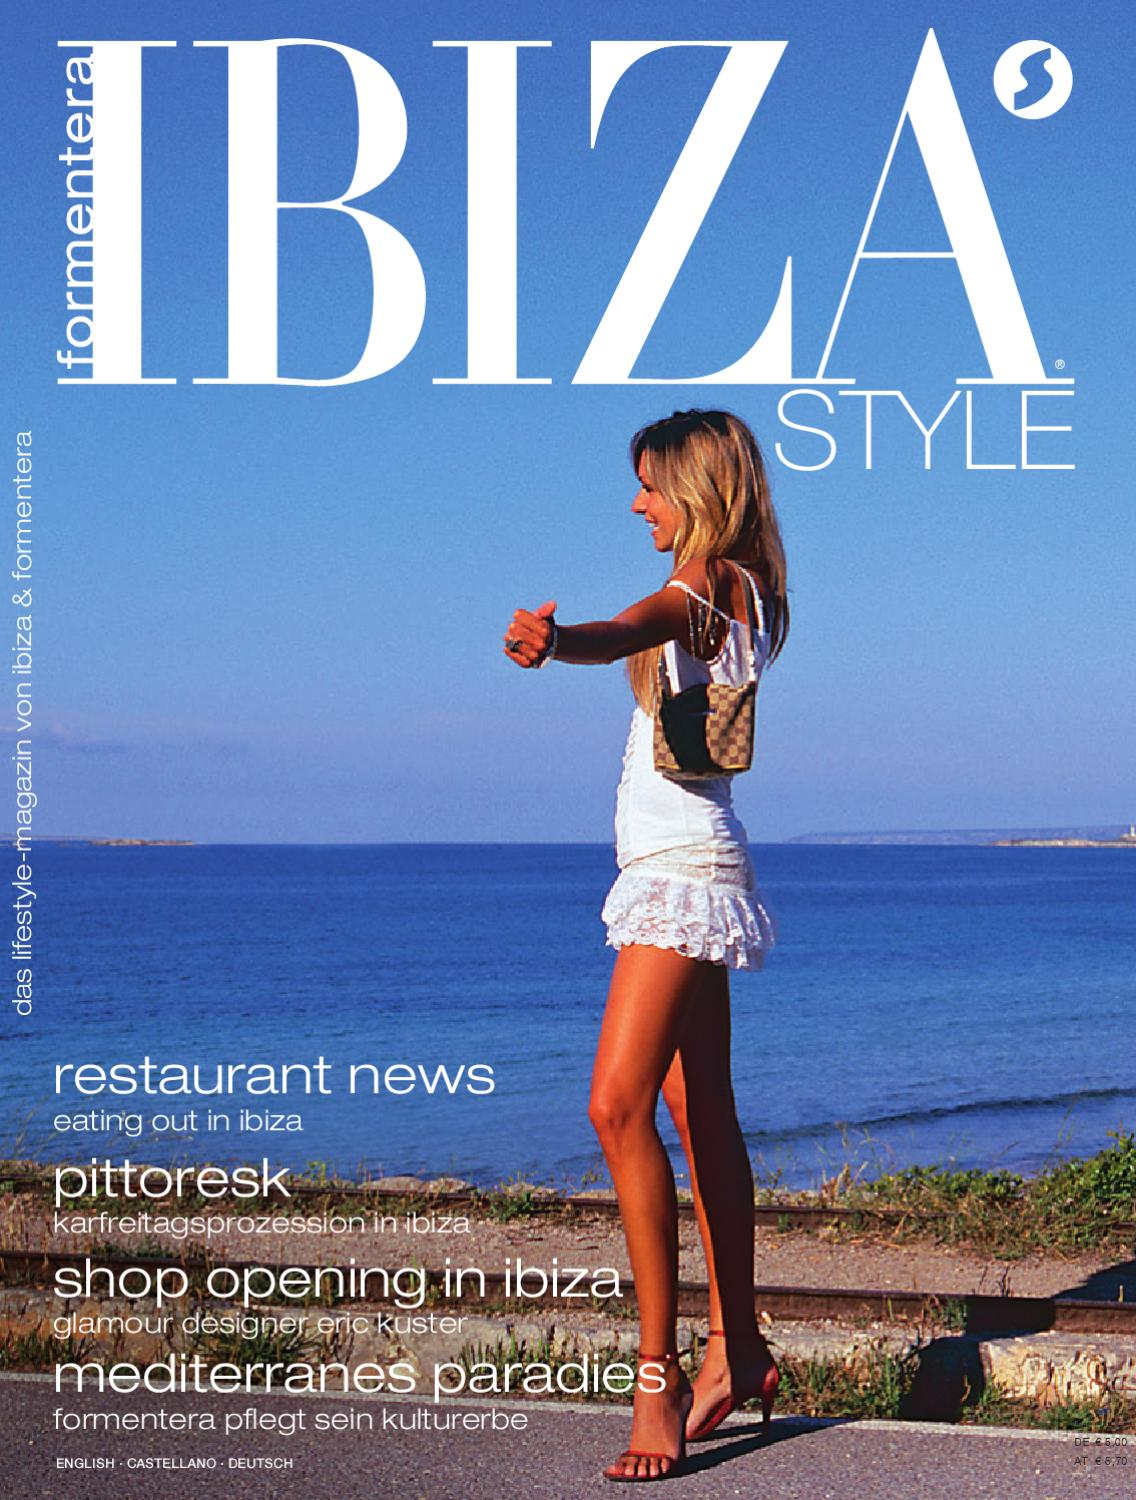 Ibiza Treibholz Möbel Ibiza Style 01 2010 By Pitiusa Media Group Issuu